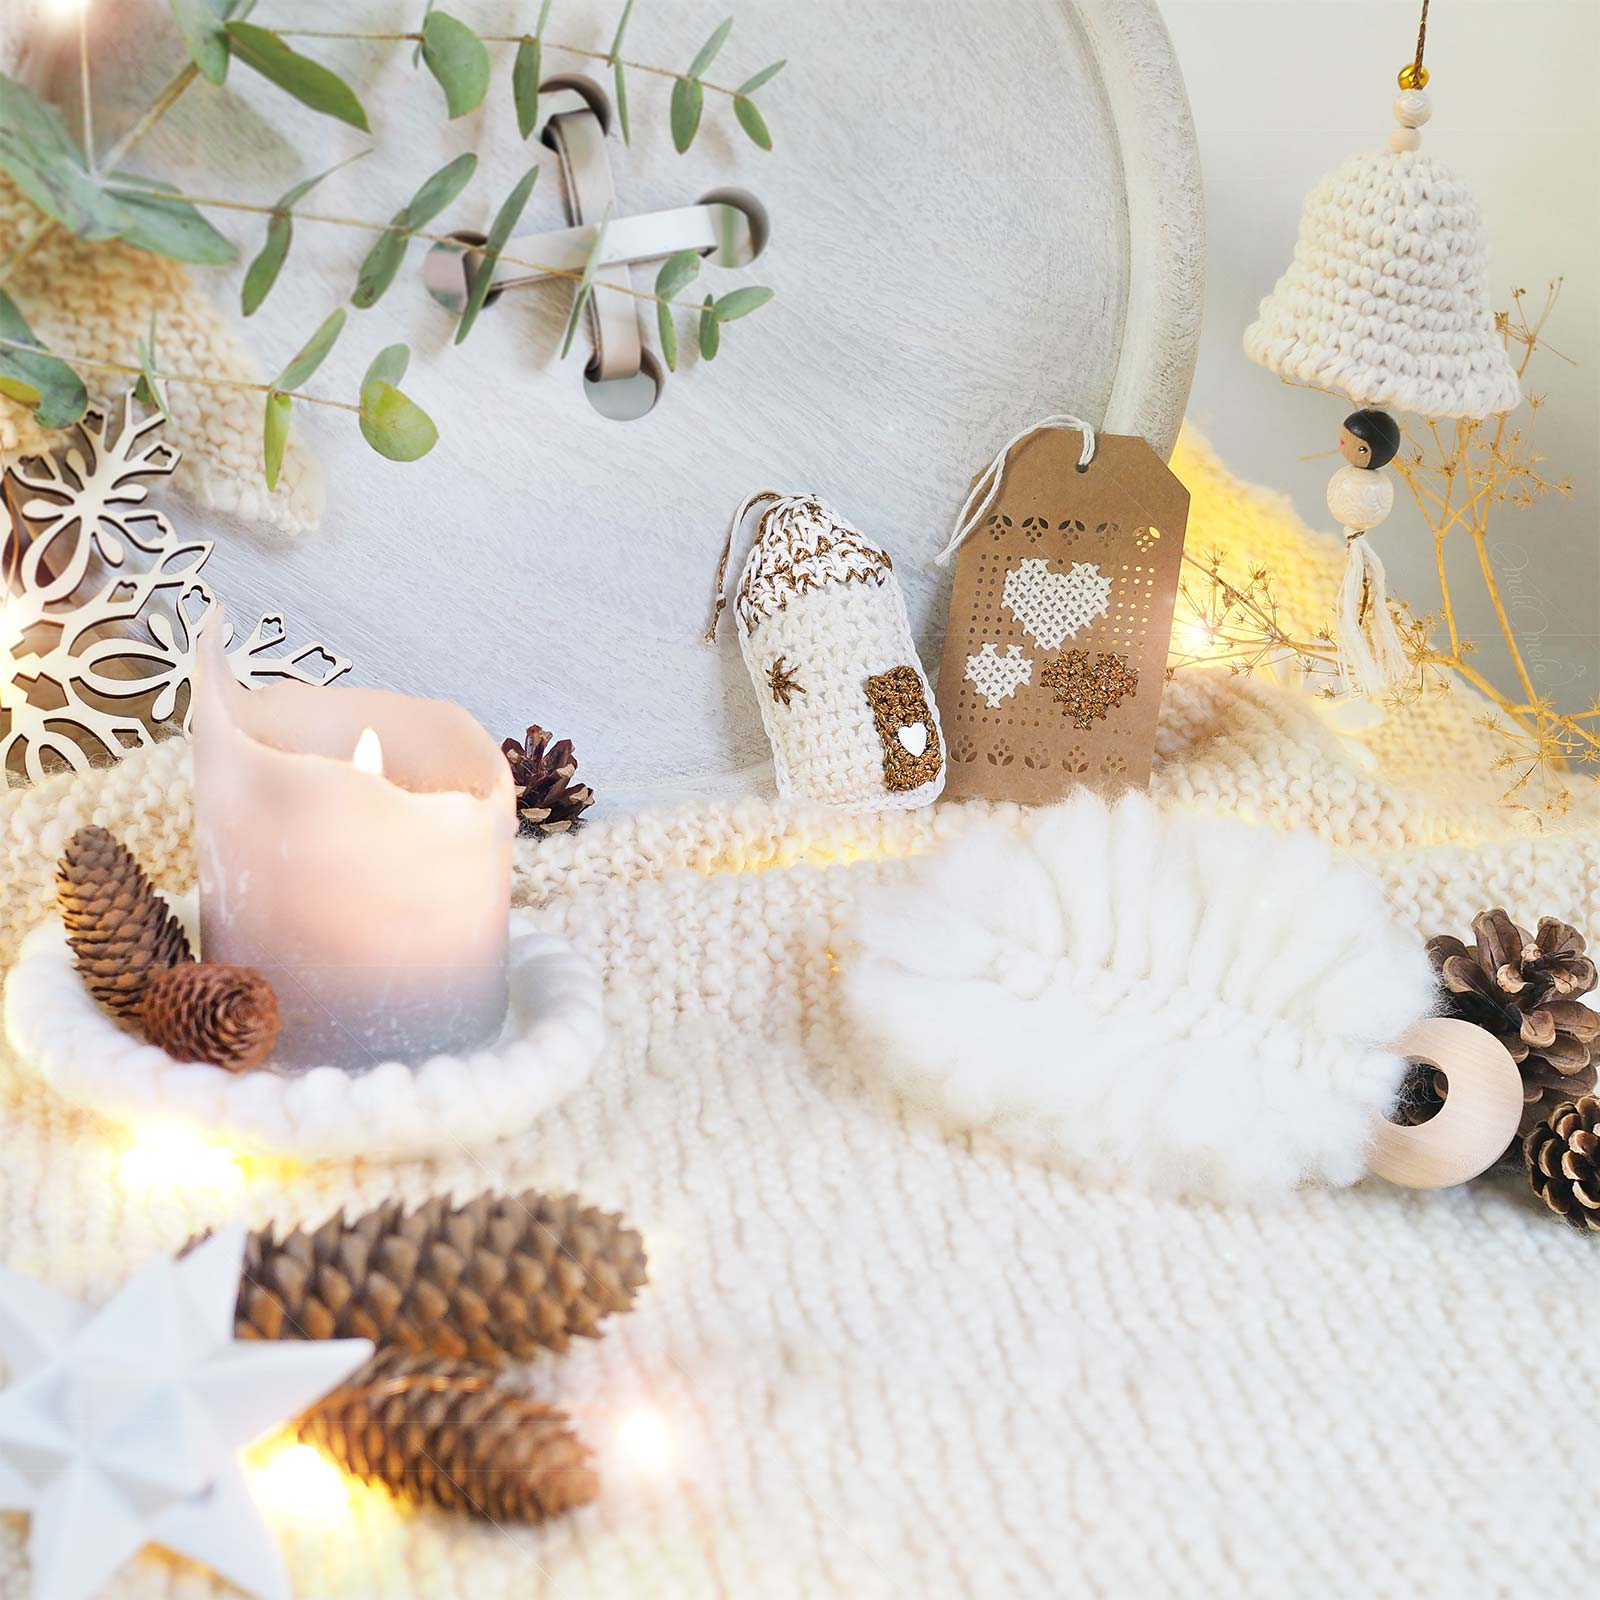 décoration Noël crochet blanc or cloche plume maison coeur boutique melimelo